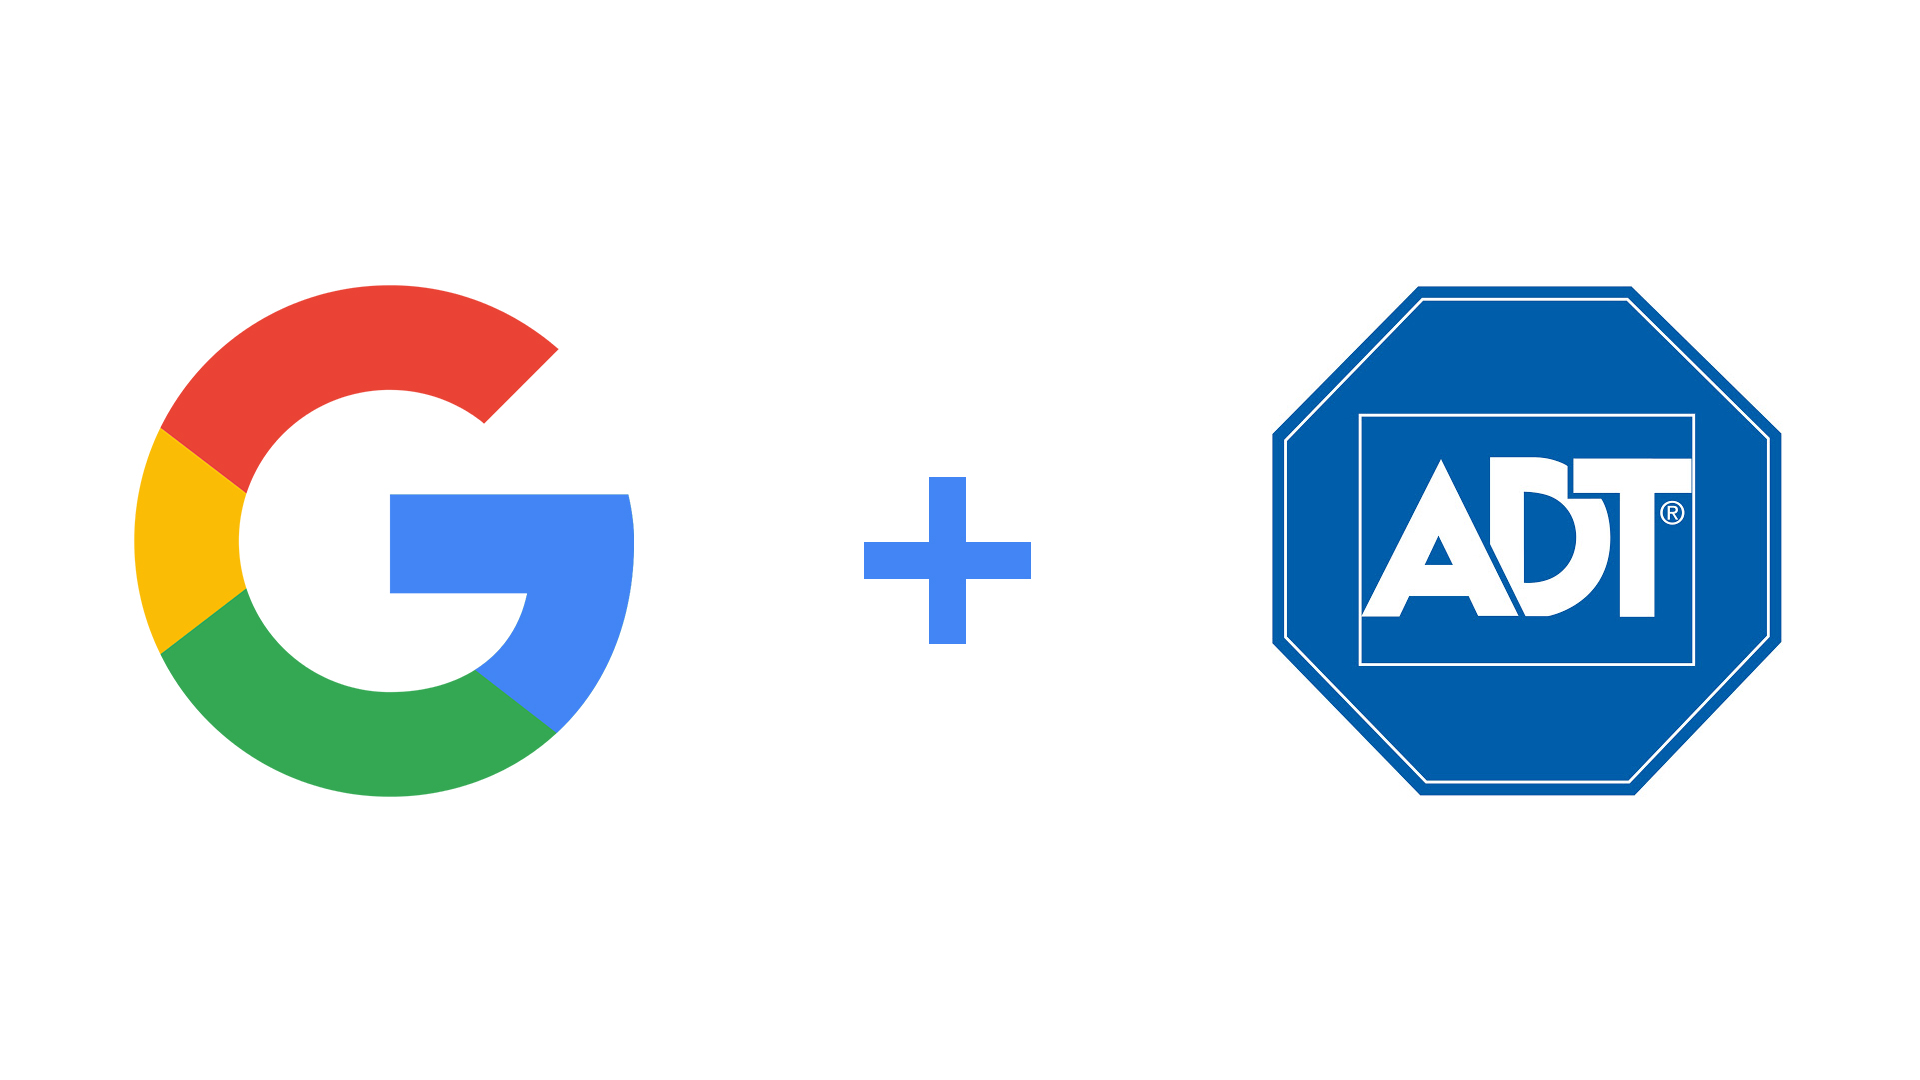 Google's partnership with ADT will begin taking form in Q3 of next year